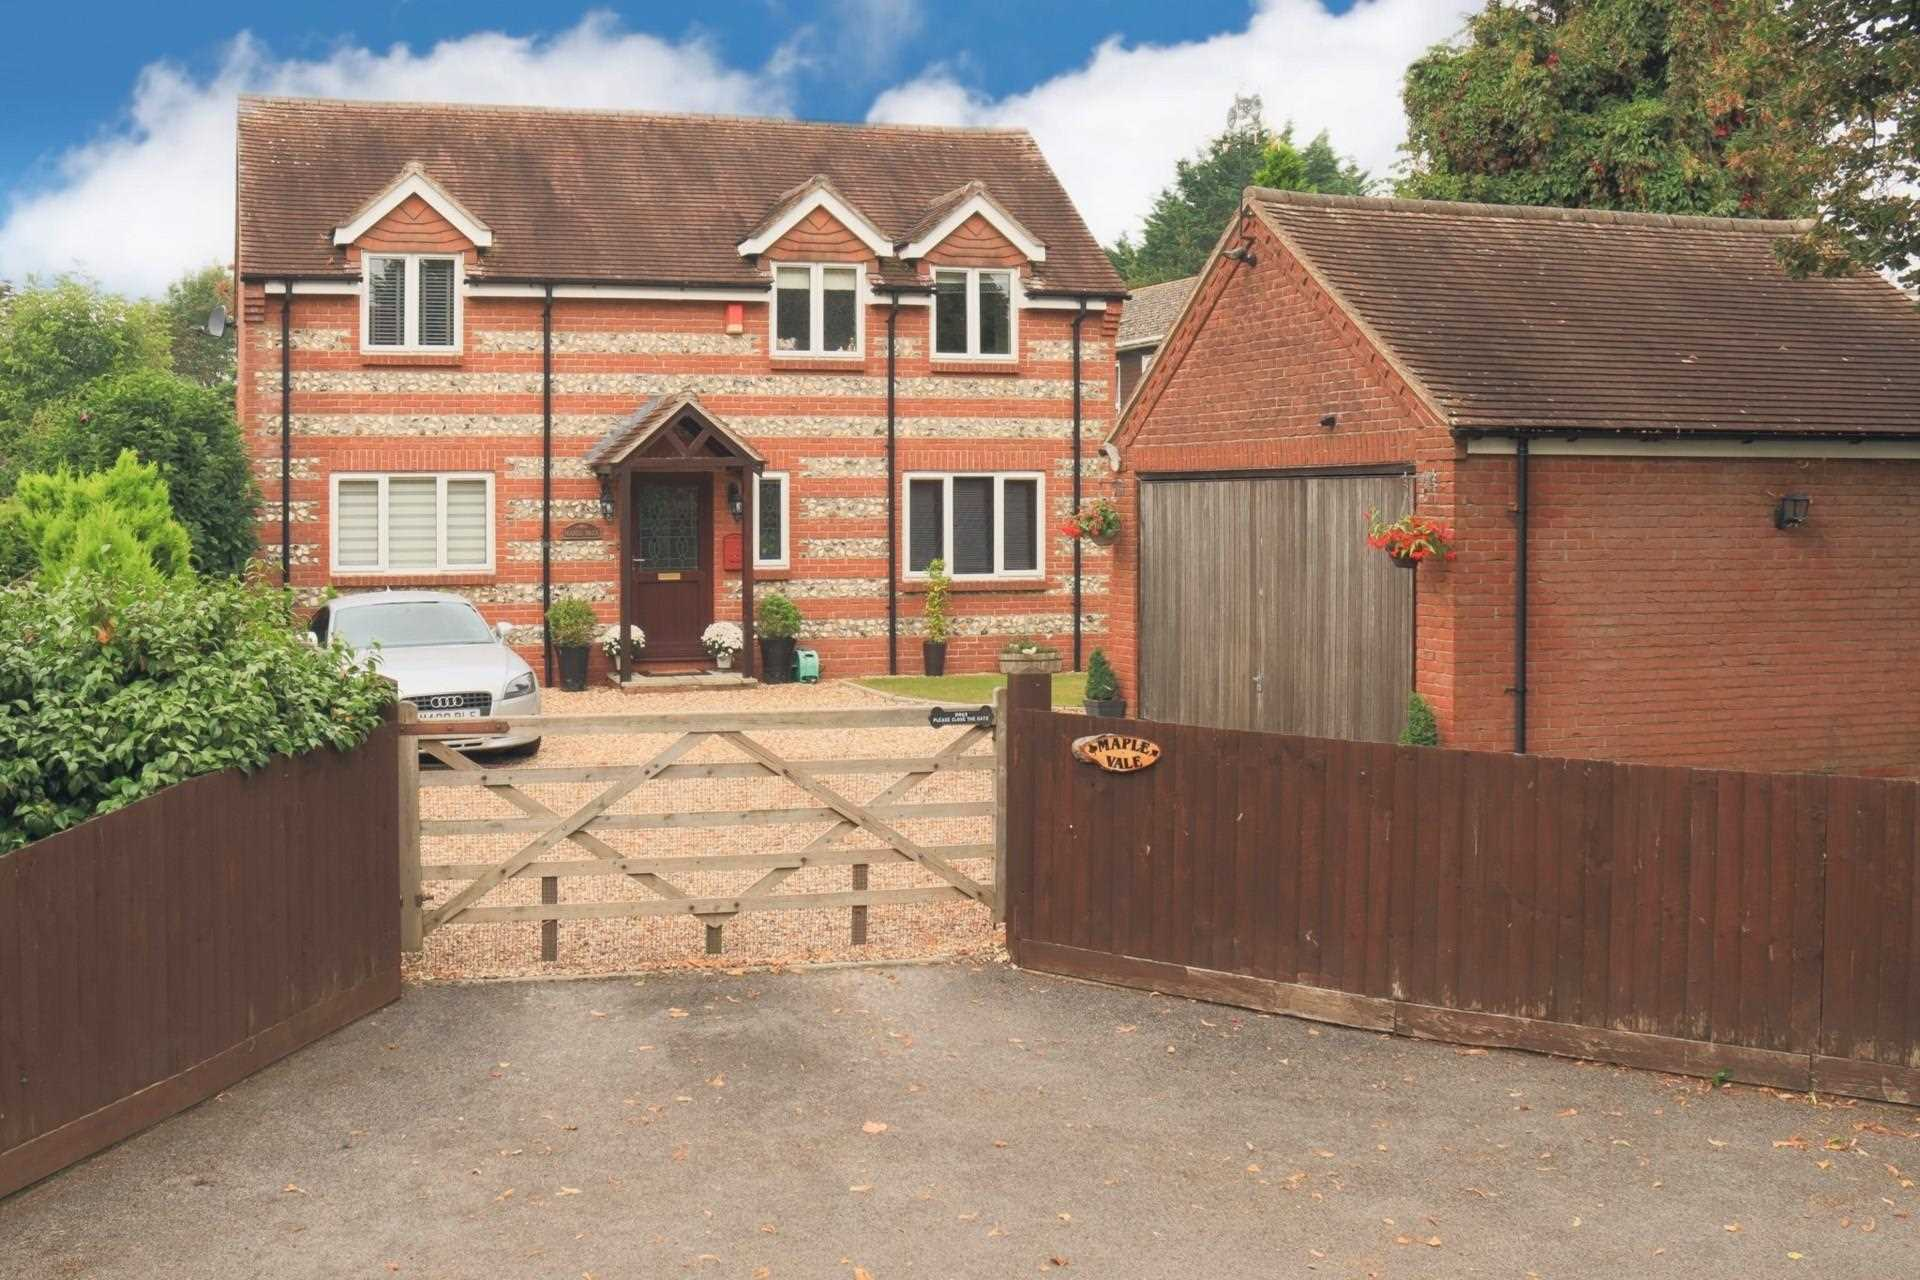 4 bed detached house for sale in Maple Vale, Whatcombe Lane, Winterborne Whitechurch, Blandford Forum - Property Image 1